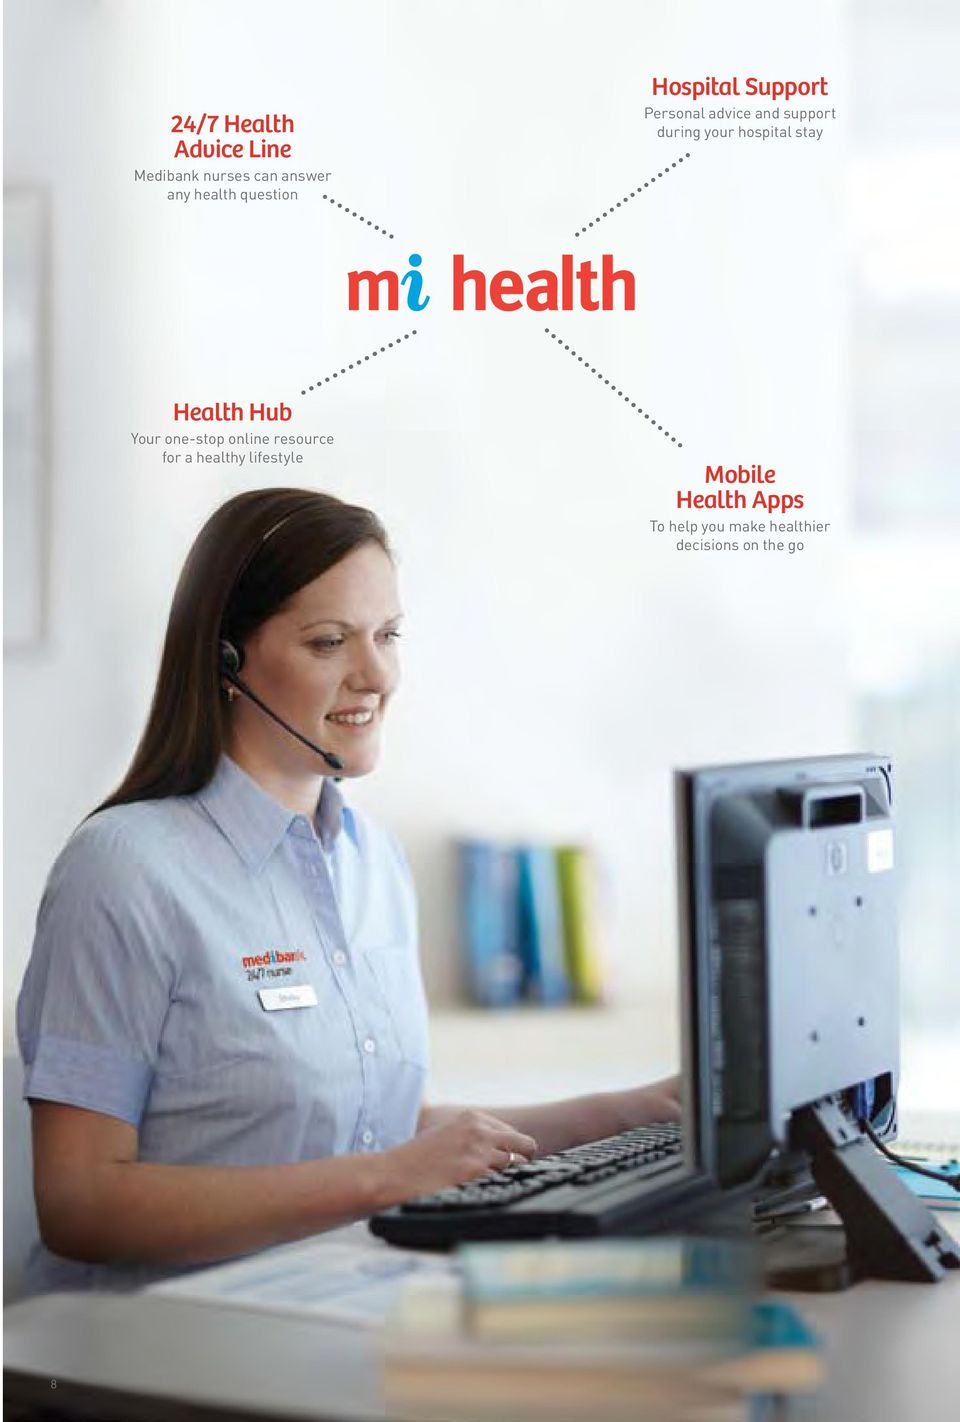 hospital stay Health Hub Your one-stop online resource for a healthy